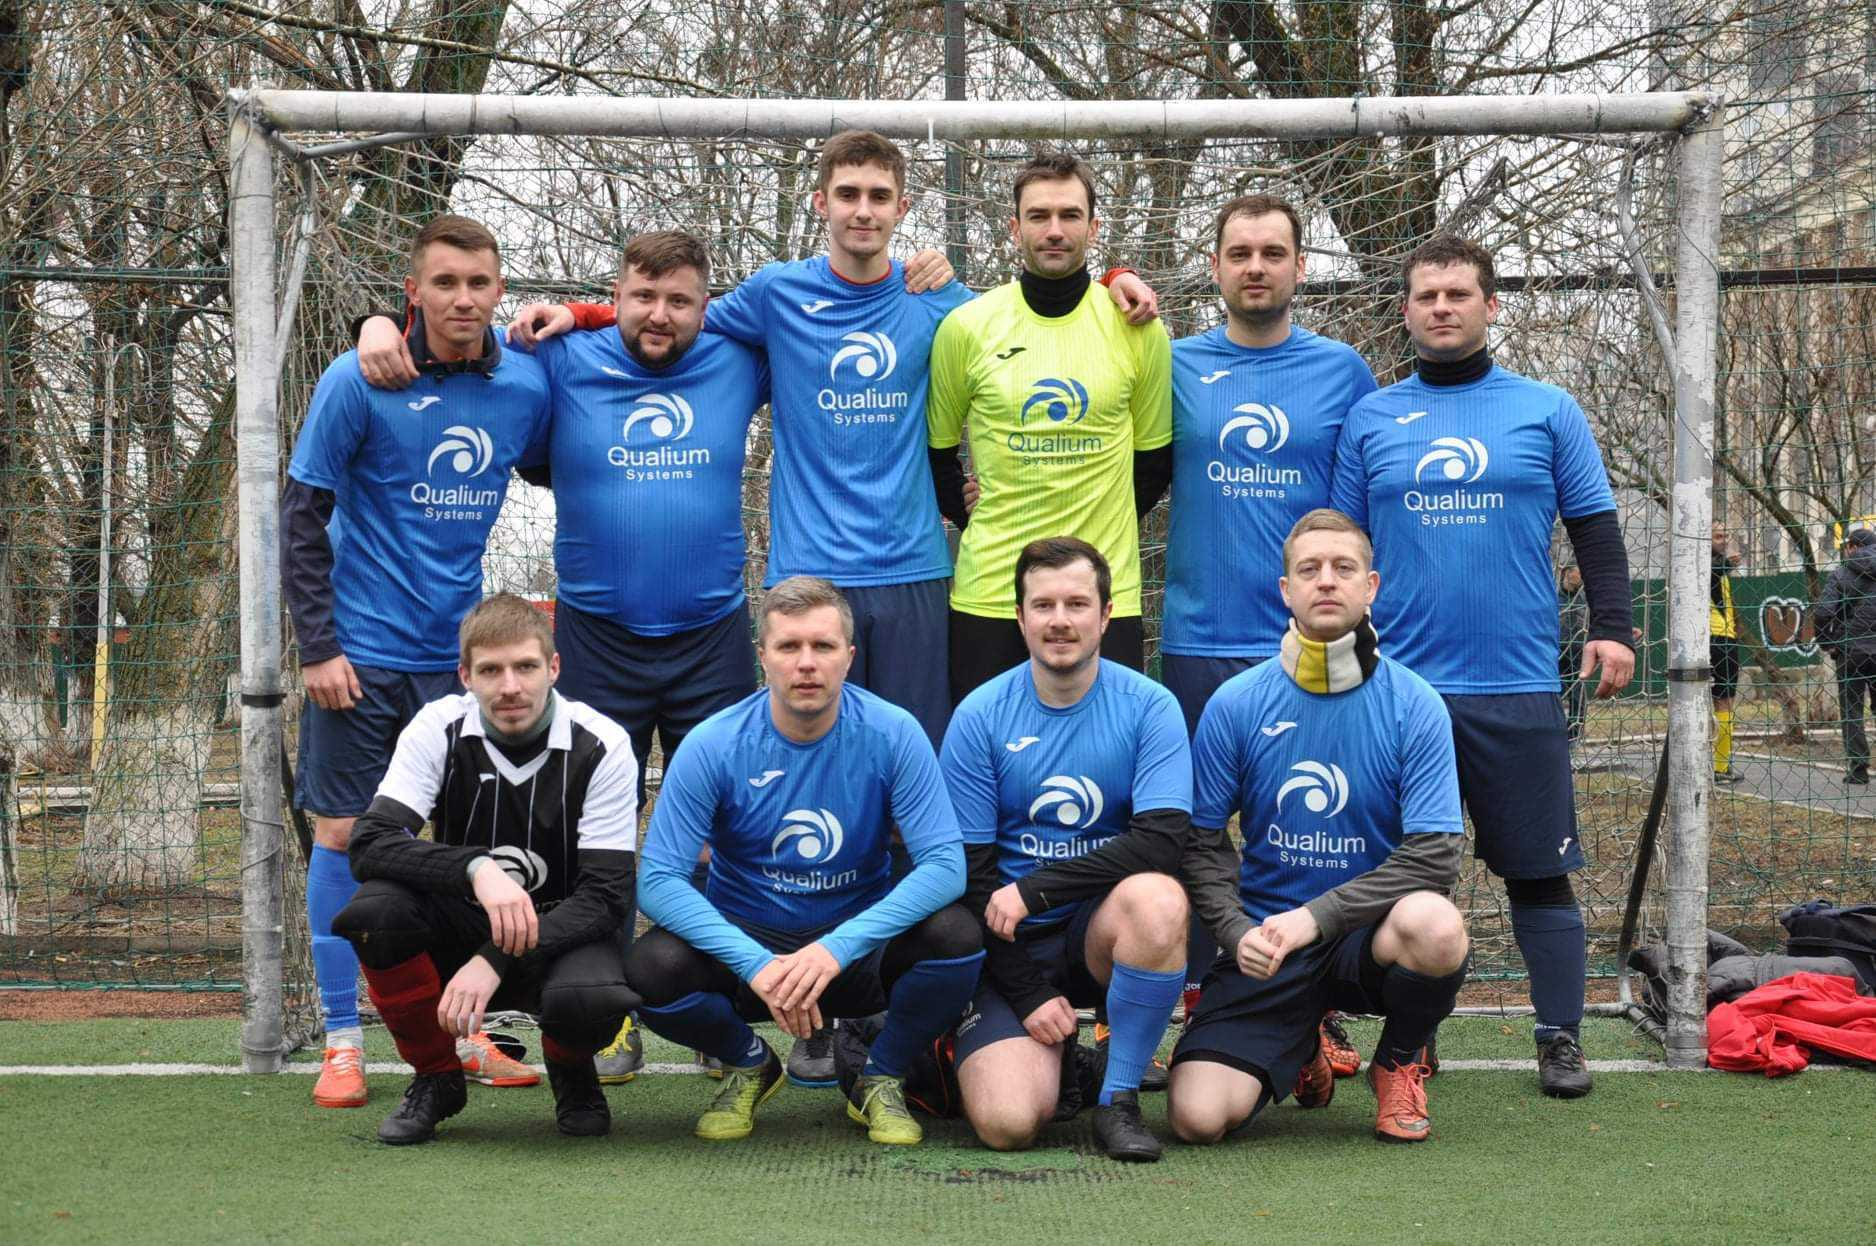 The Qualium Systems mini_football team took the second place in the Middle IT League of Kharkiv